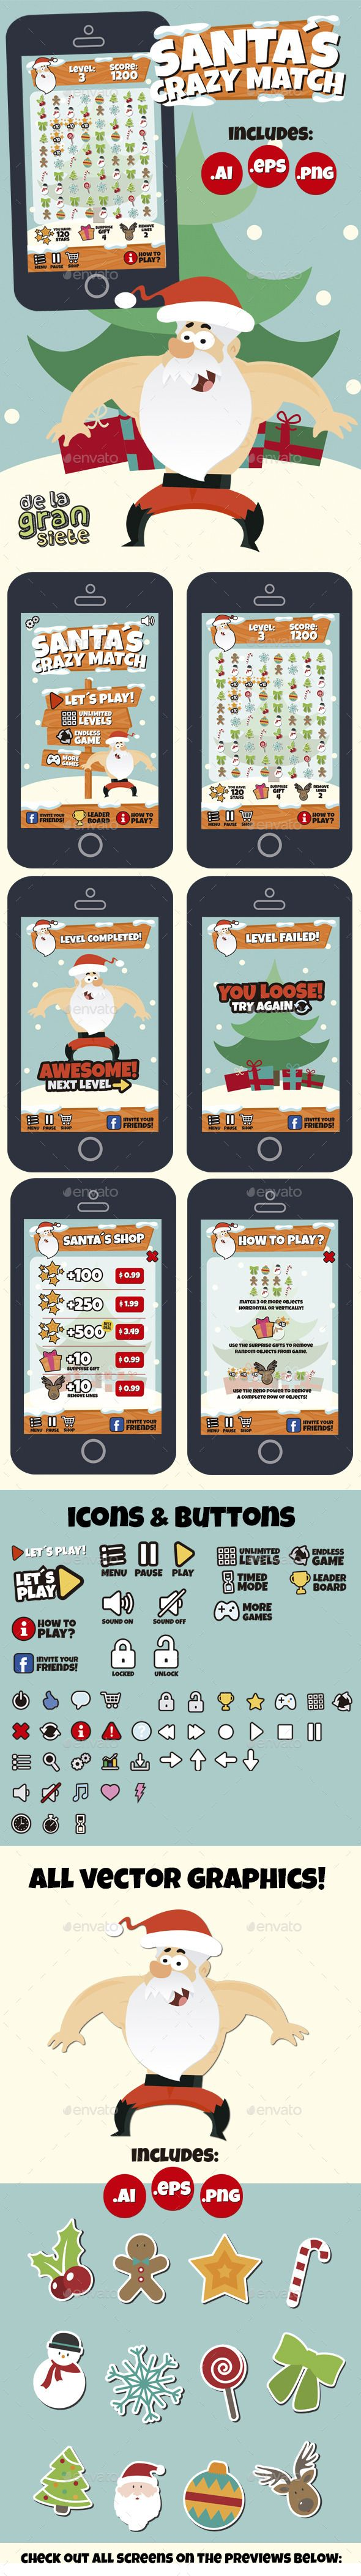 Christmas Match 3 Style Game Assets — Vector EPS #assets #game • Download here → https://graphicriver.net/item/christmas-match-3-style-game-assets-/9687227?ref=pxcr